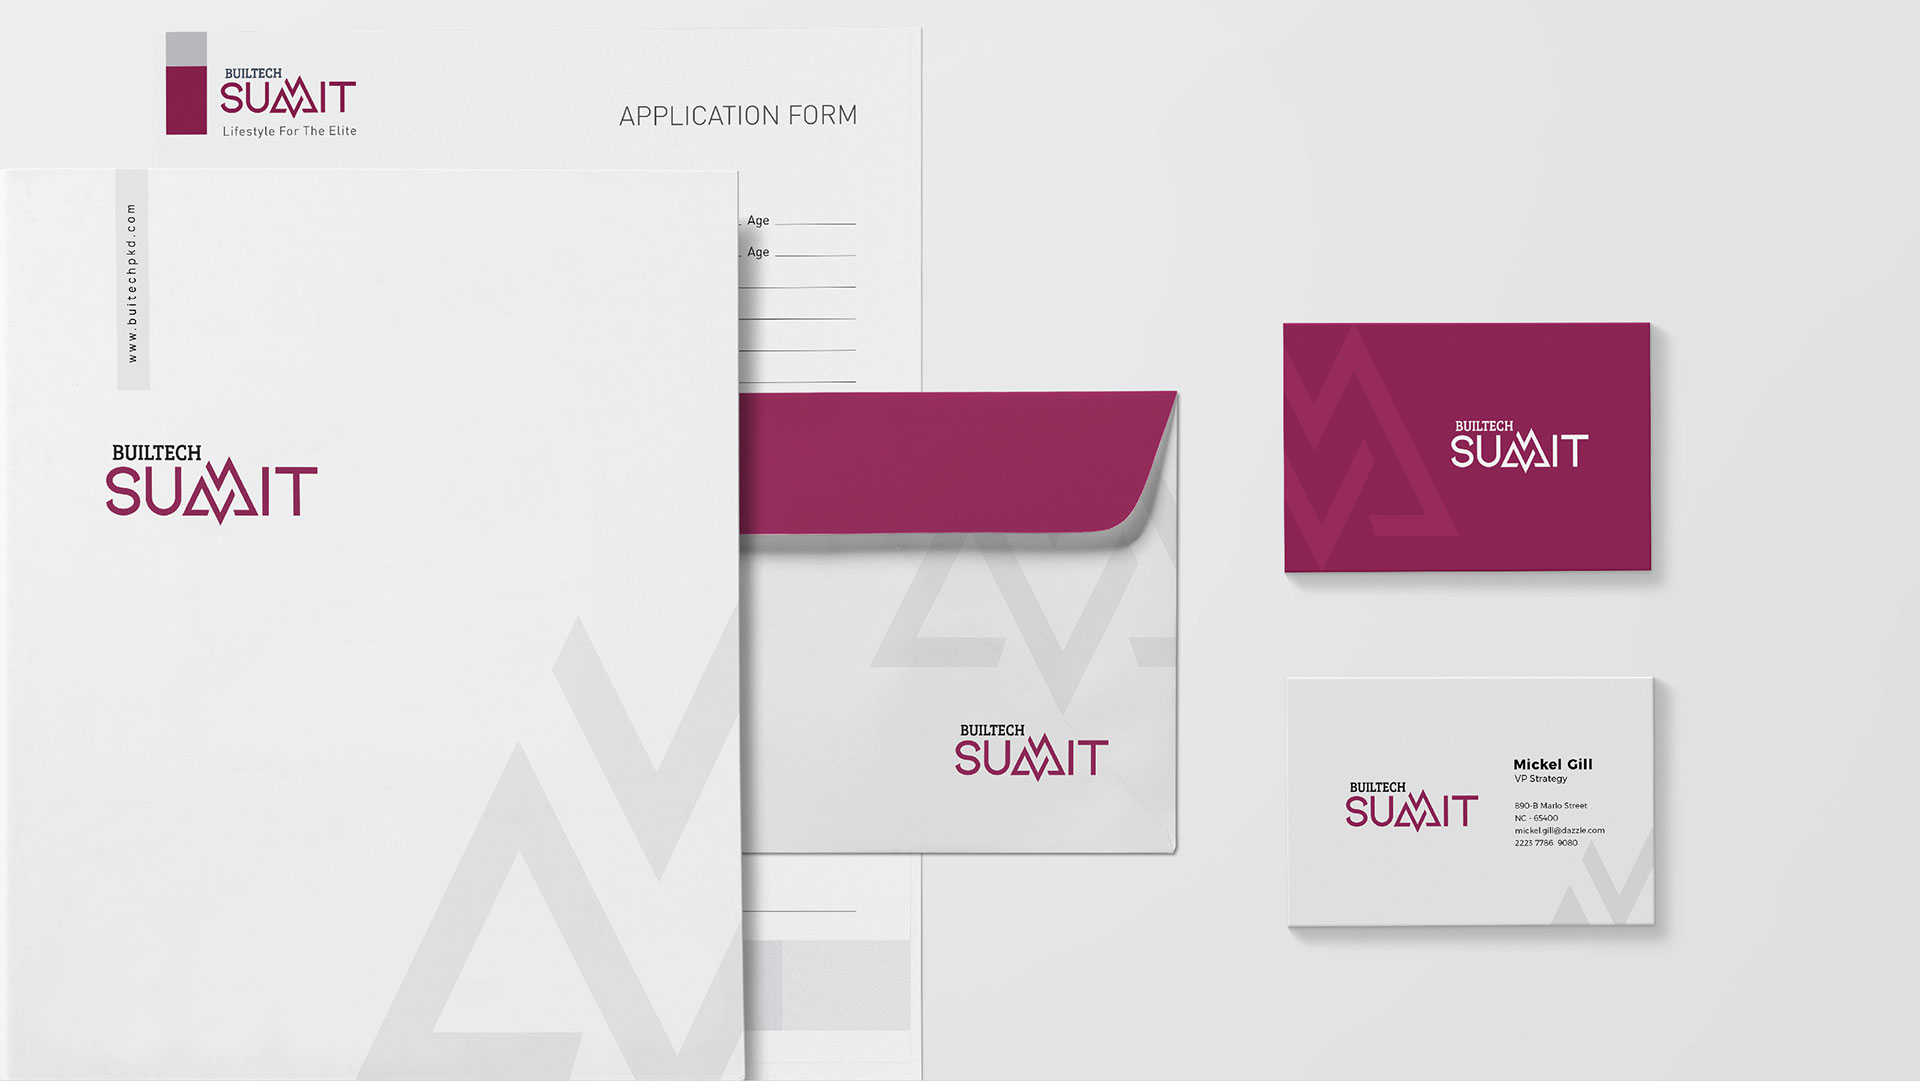 Builtech Palakkad - Summit Appartments Stationaries branding and design